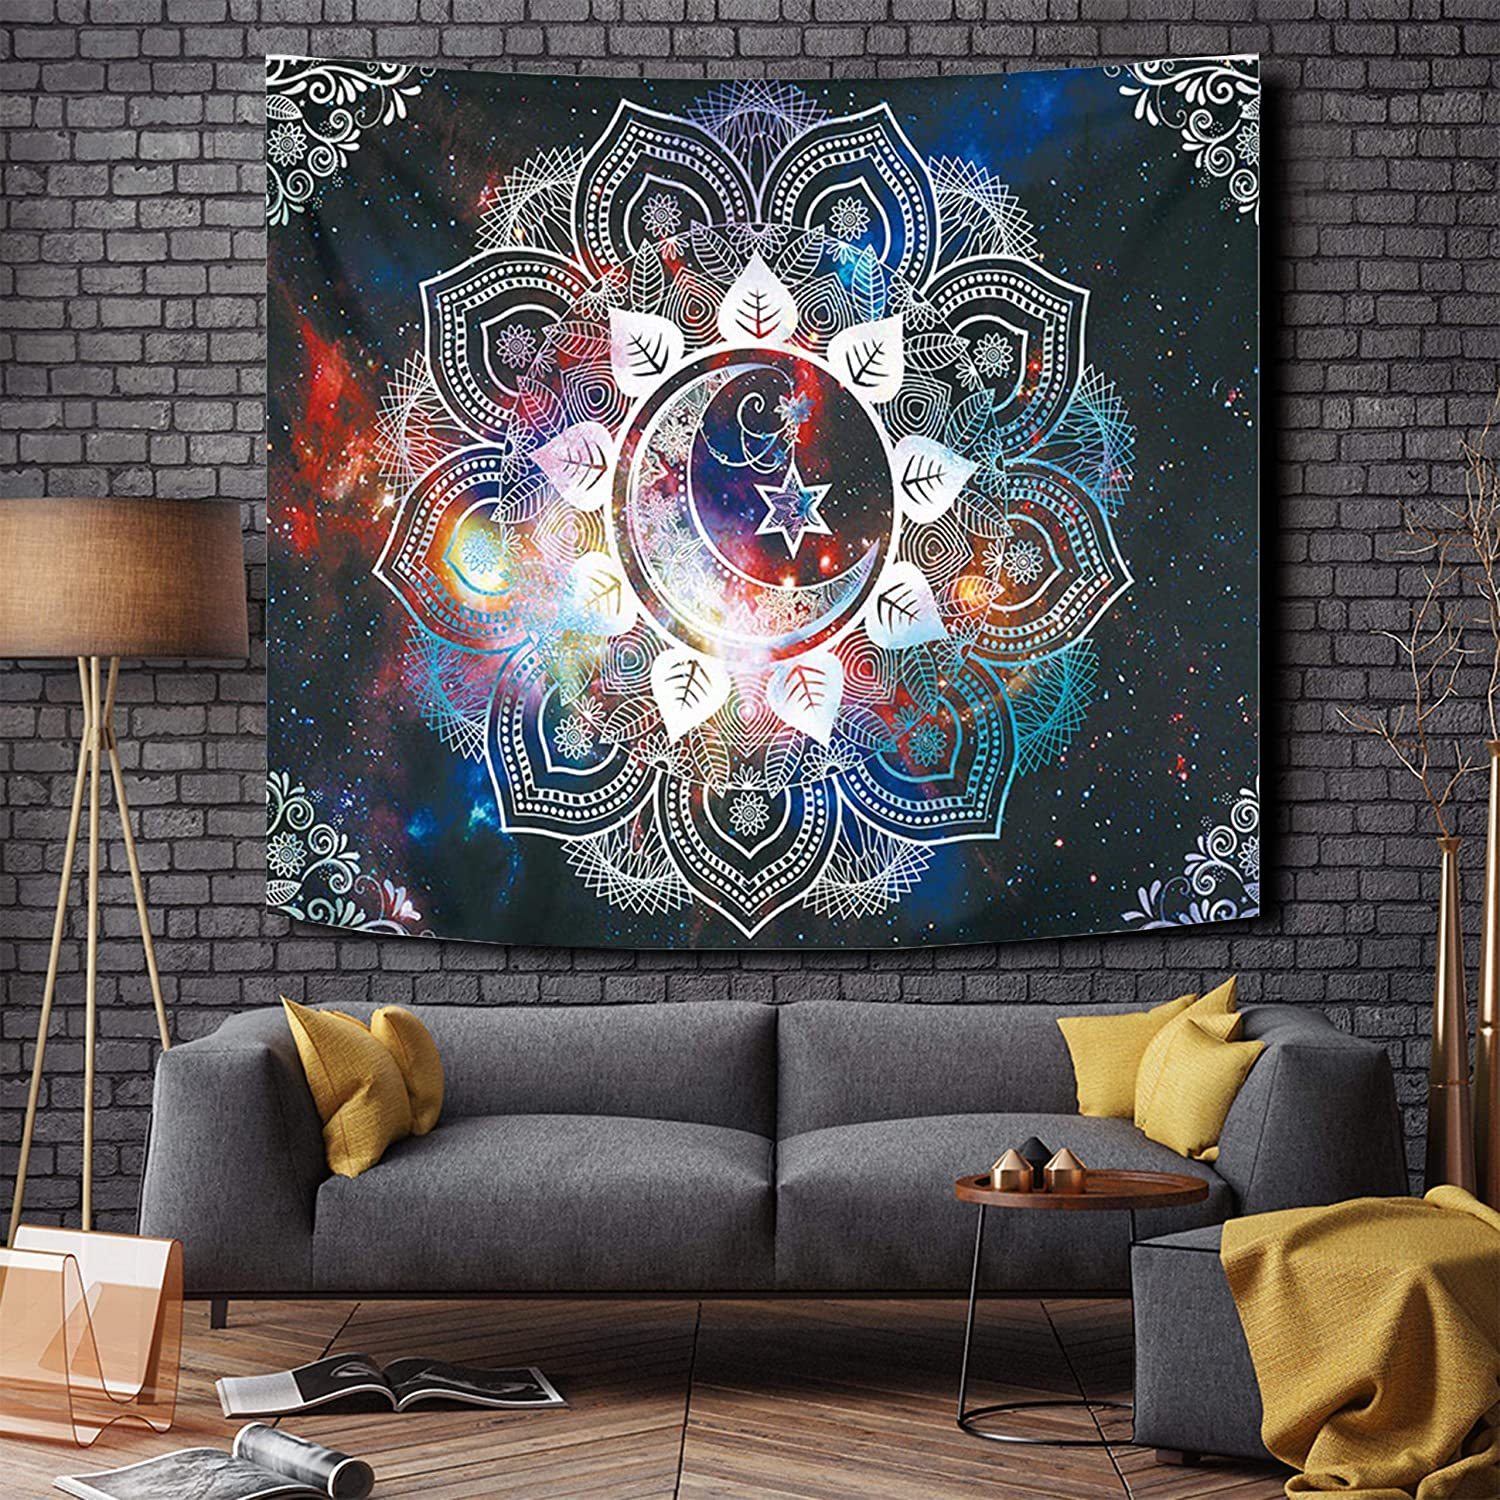 Tapestries Fancy Floral Wall Hangings Room Decor For Bedroom Aesthetic Wall Decor For Bedroom Hippie Landscape Wall Art For Living Room Beige Starmoon 51 59inches Walmart Canada